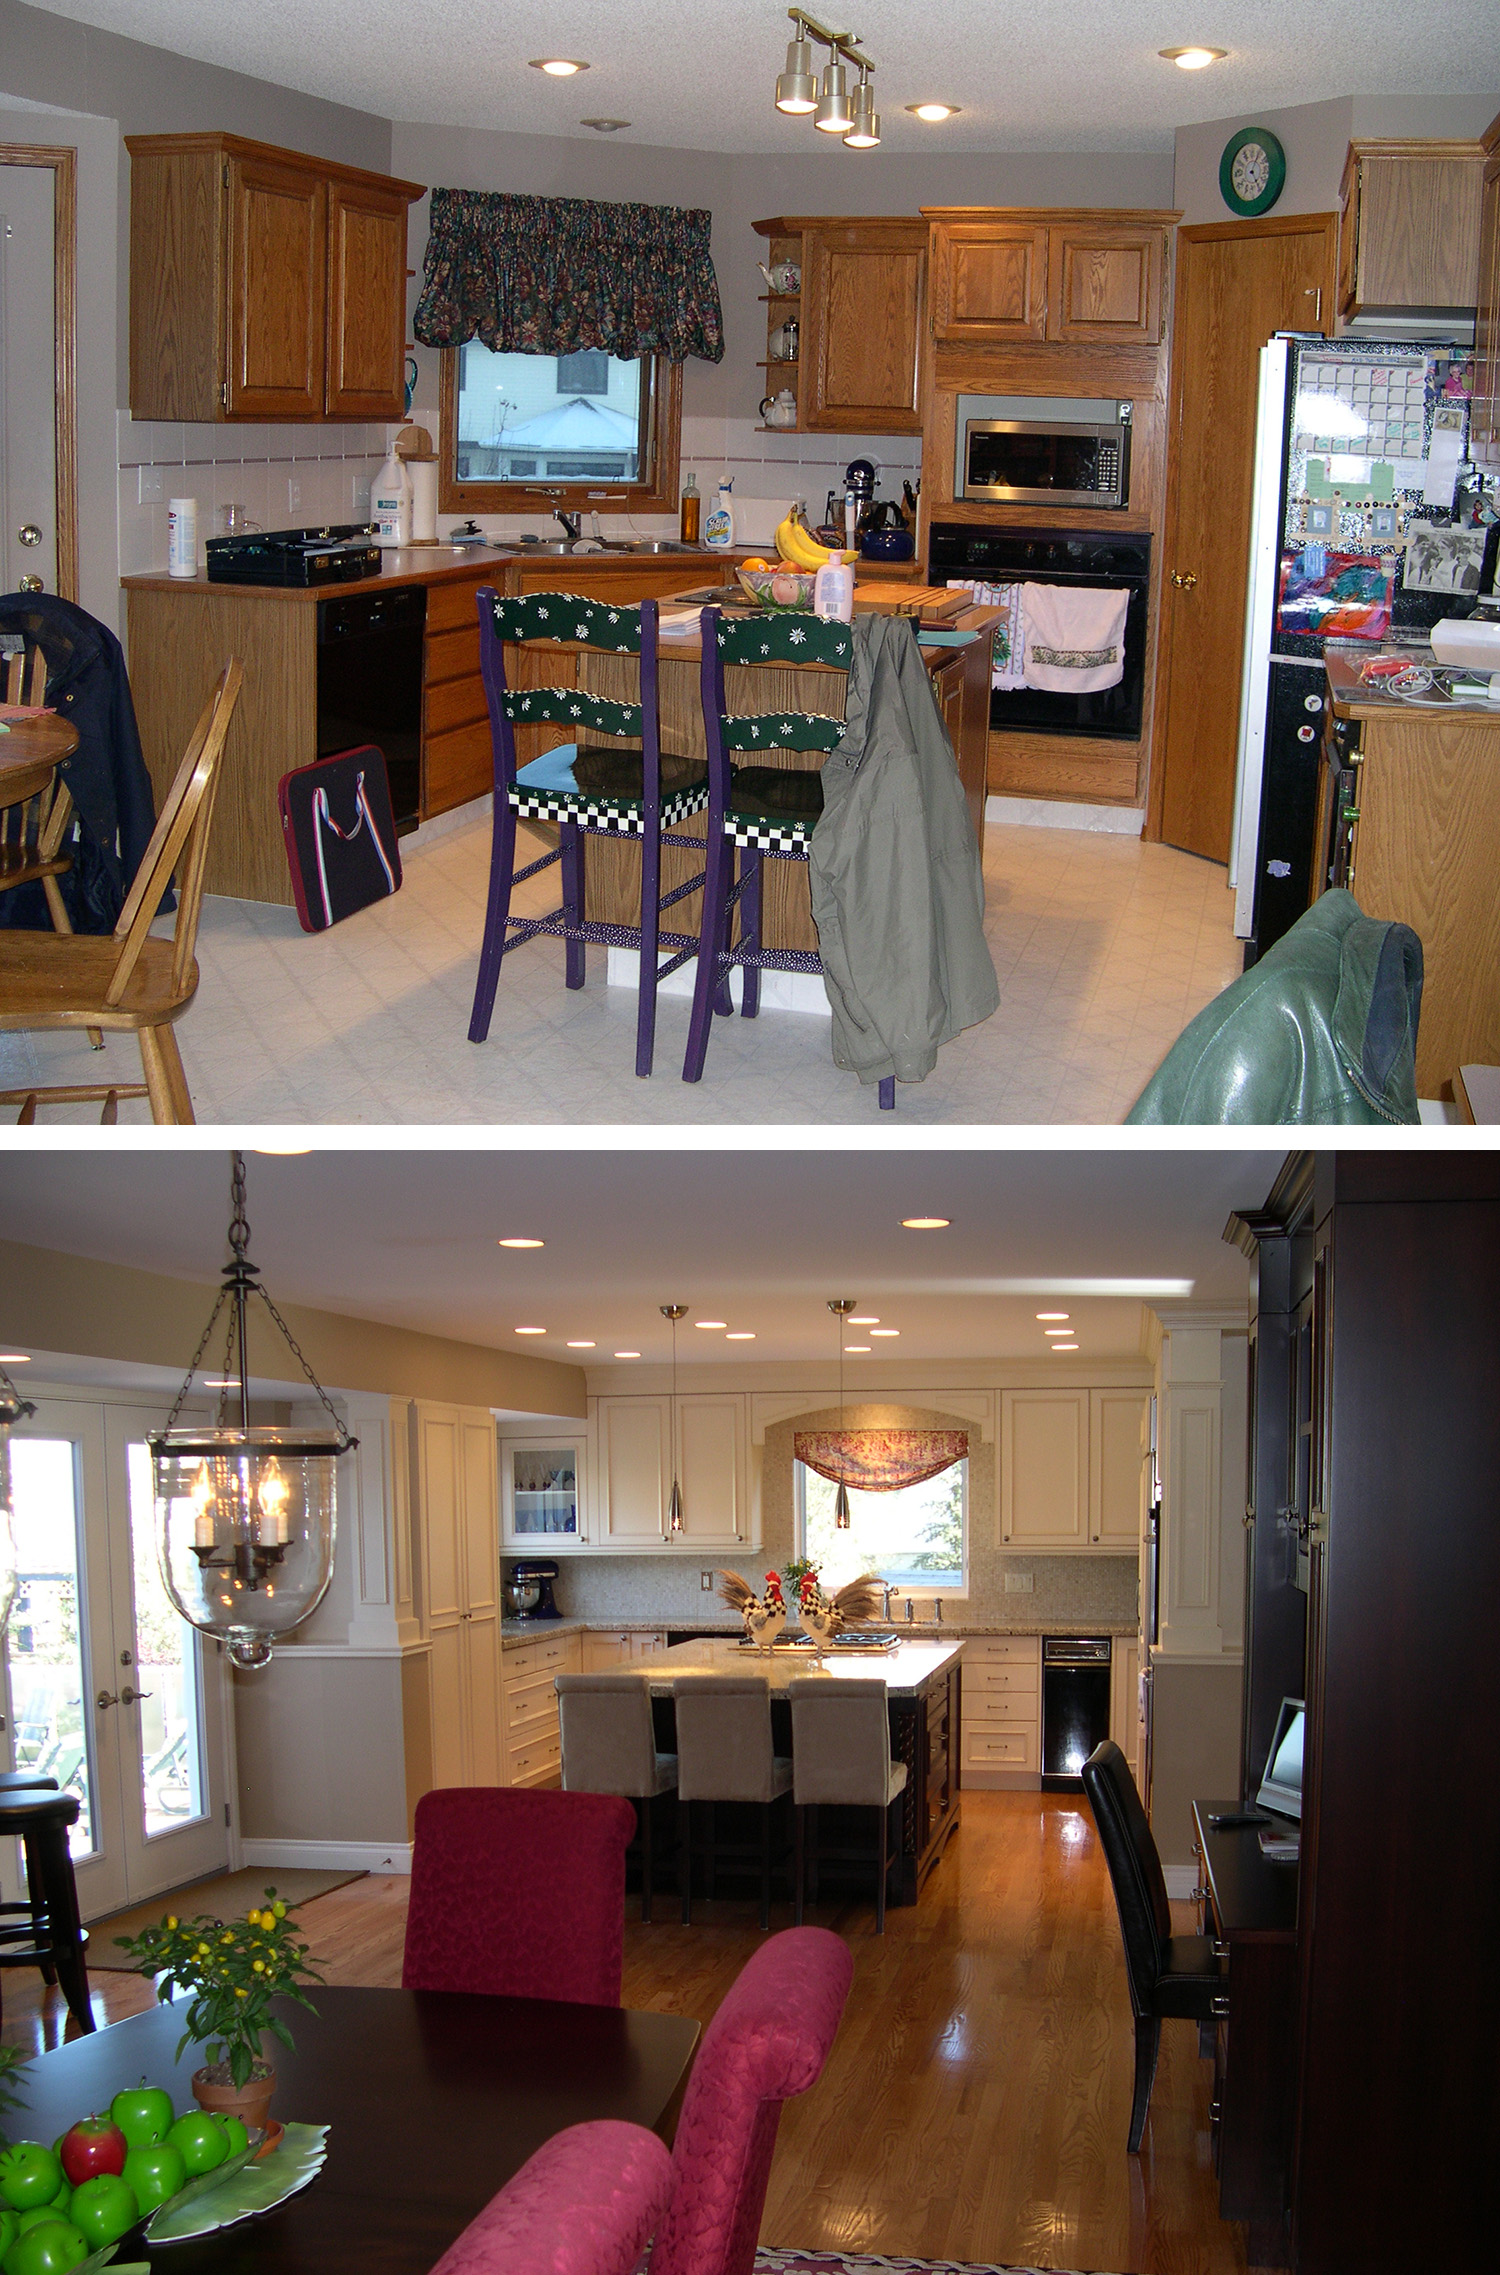 Before & After of a Kitchen Renovation in the Calgary community of Woodbine